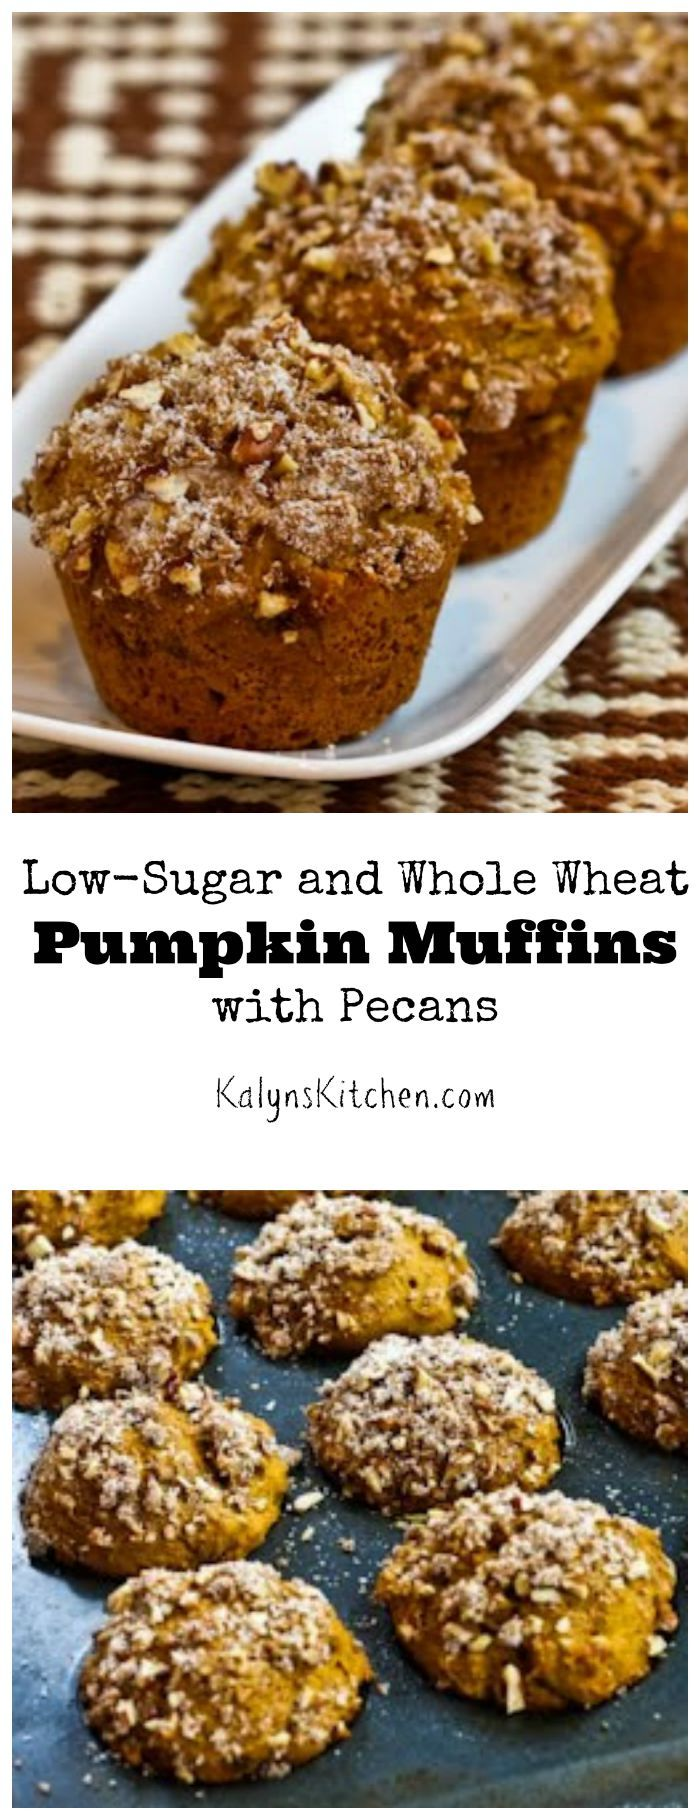 PIN this recipe for Low-Sugar and Whole Wheat Pumpkin Muffins with Pecans so you'll have it when you're ready to get your pumpkin on! [from KalynsKitchen.com}